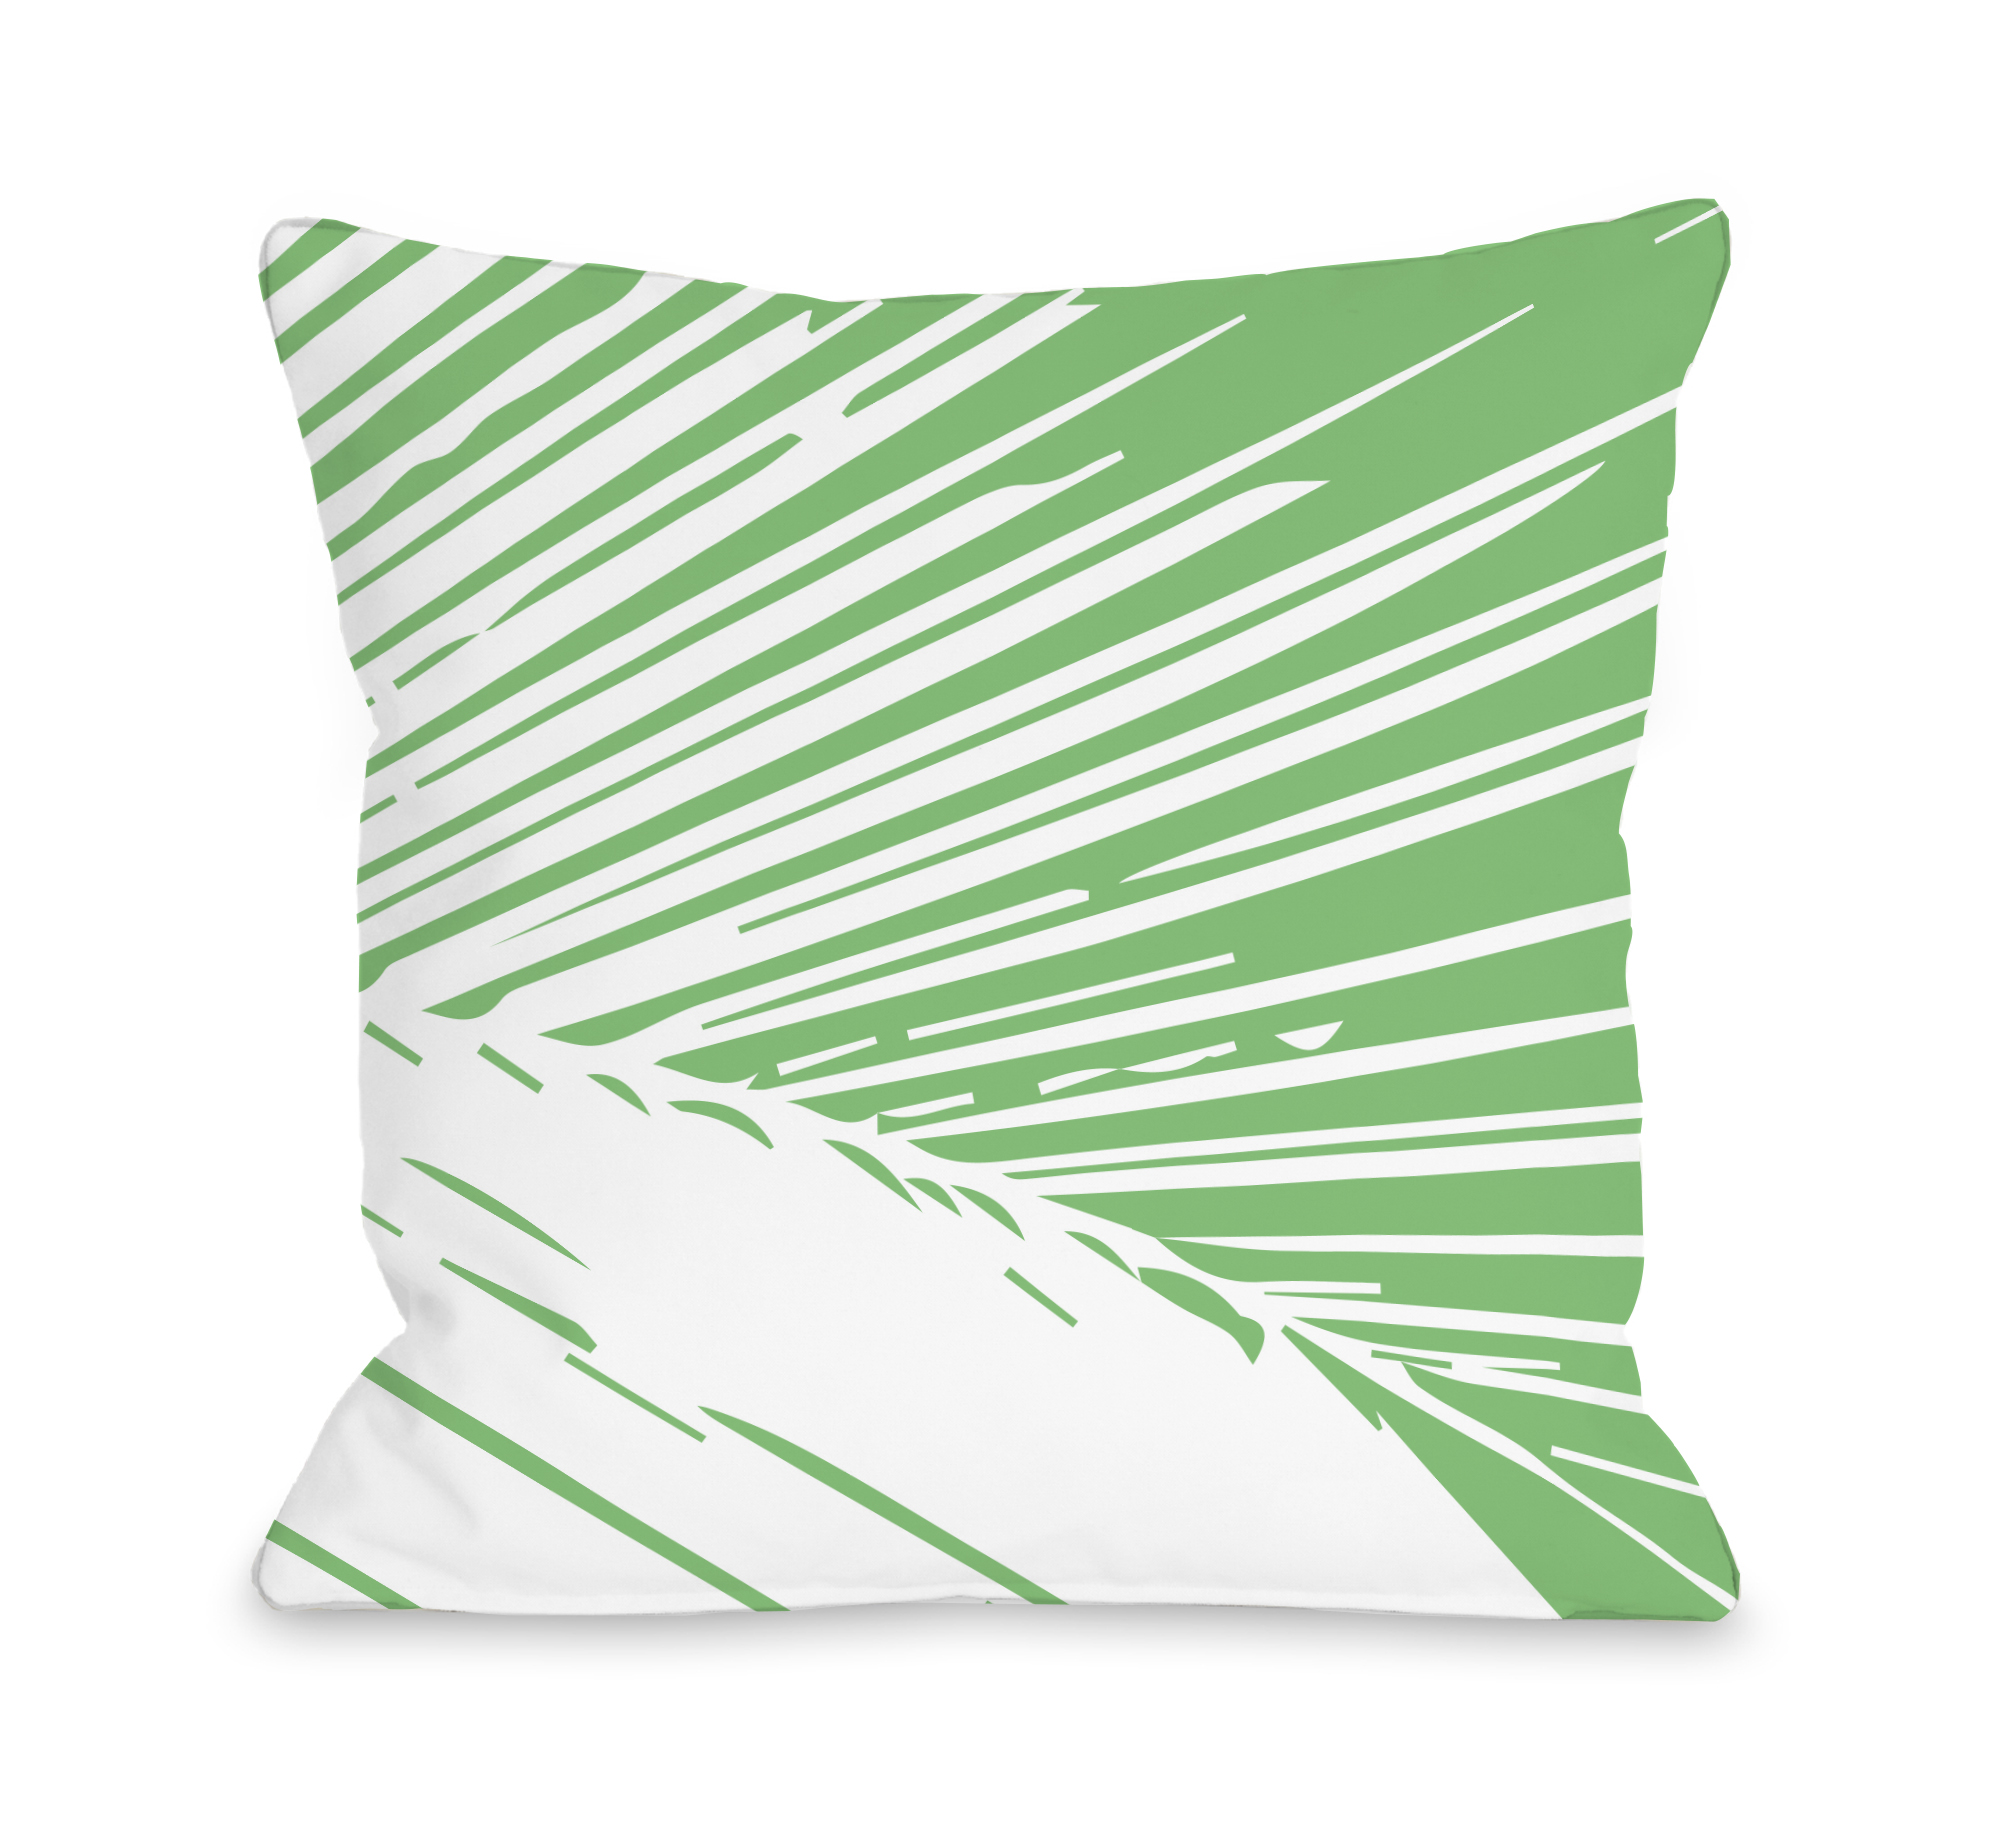 Alaiya Palm Leaves - Green 18x18 Pillow by OBC